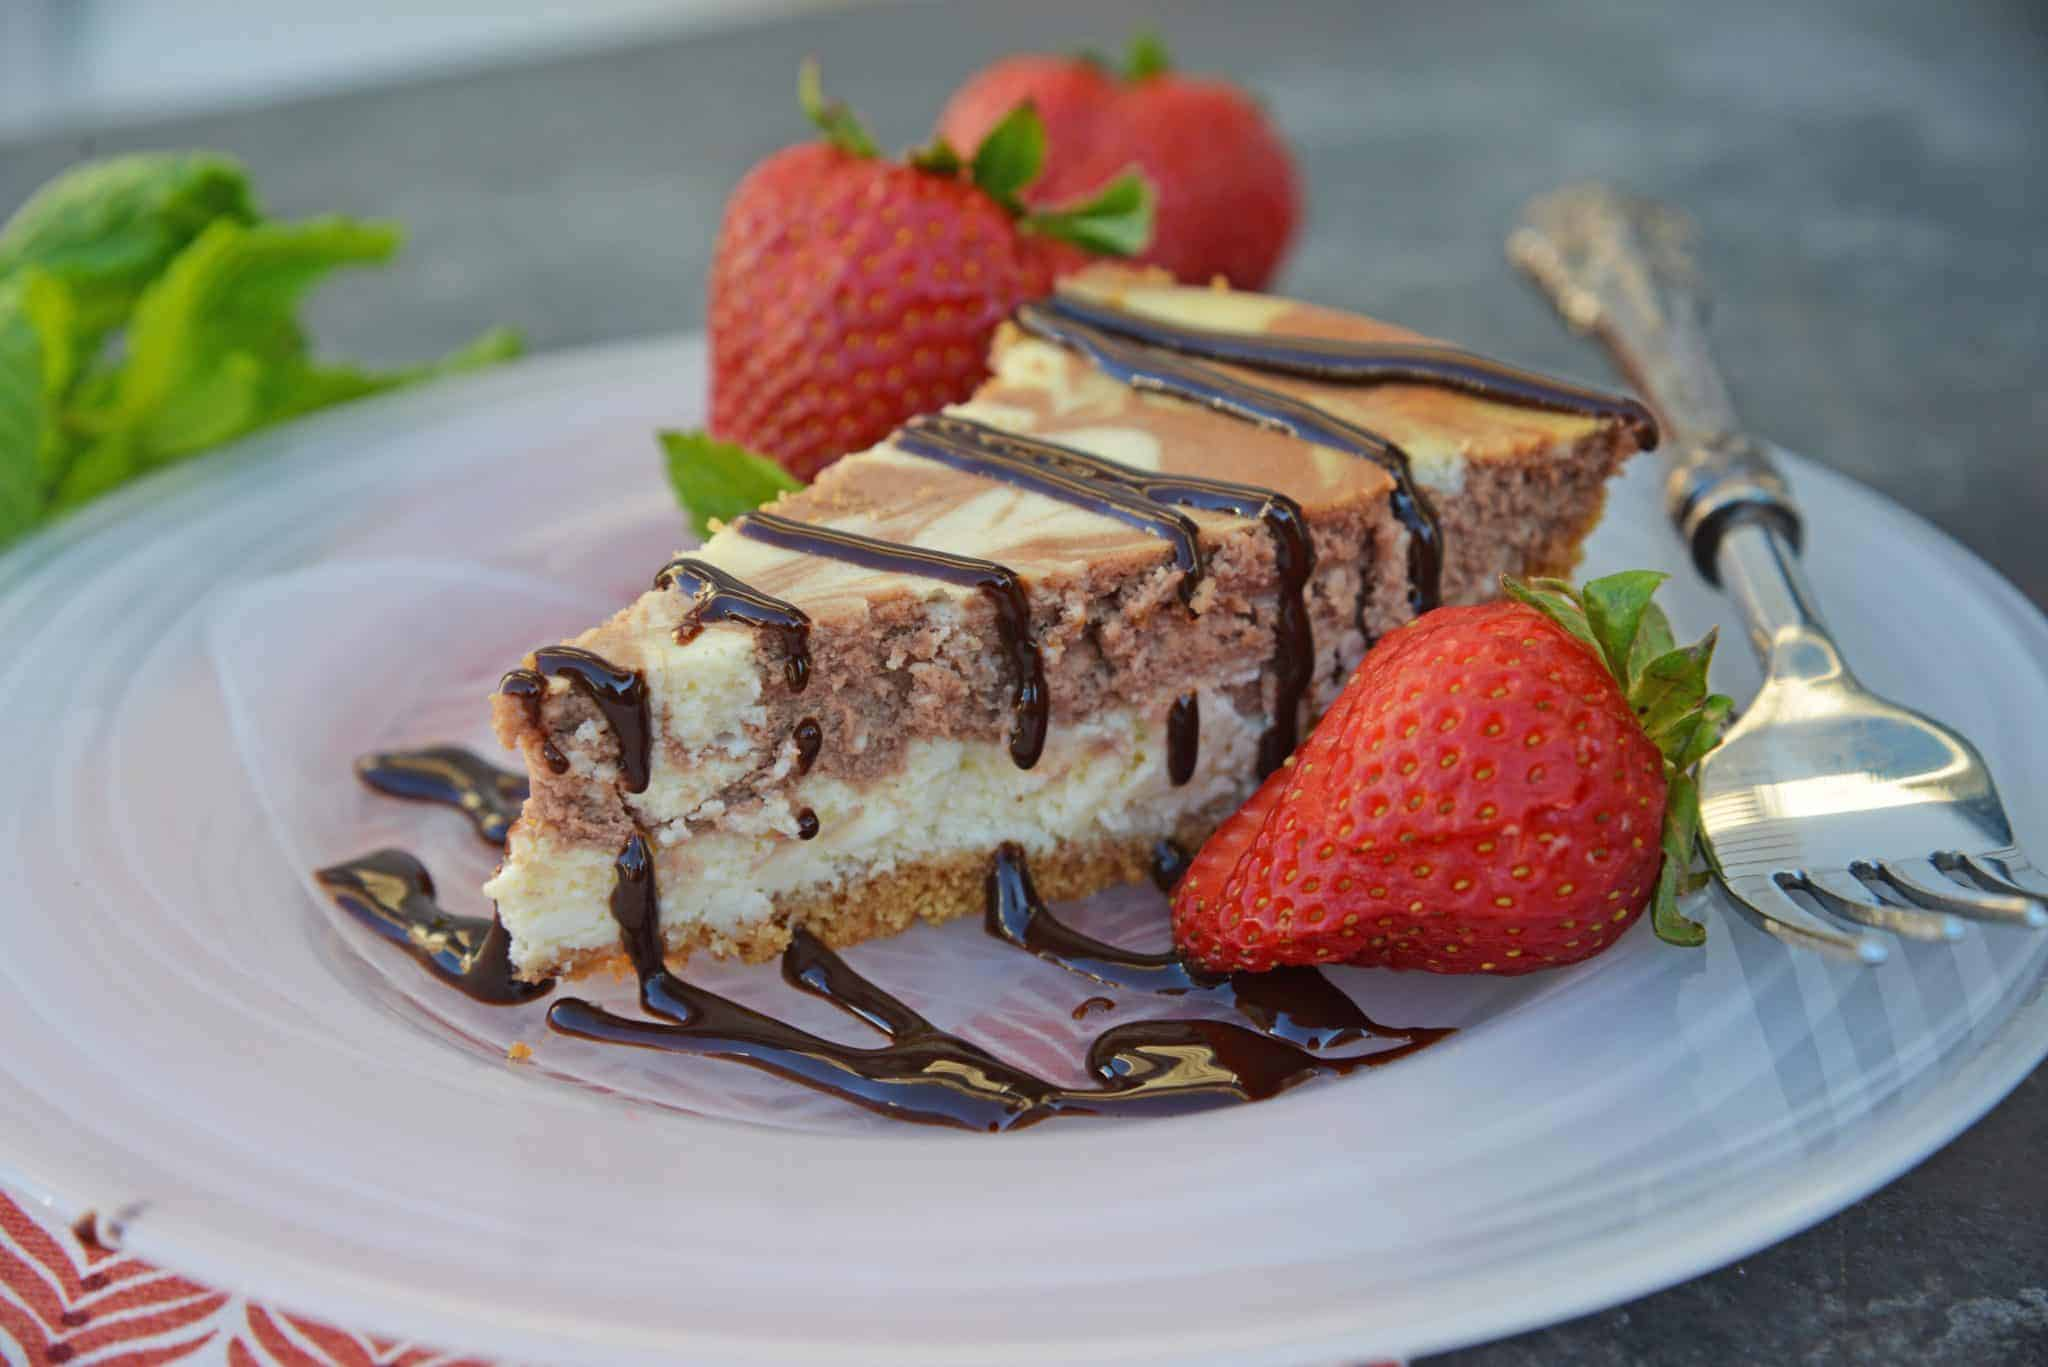 Marble New York Cheesecake is one of the best cheesecake recipes you'll ever come across! This dessert is a thicker but deliciously creamy cheesecake recipe! #newyorkstylecheesecake #bestcheesecakerecipes www.savoryexperiments.com